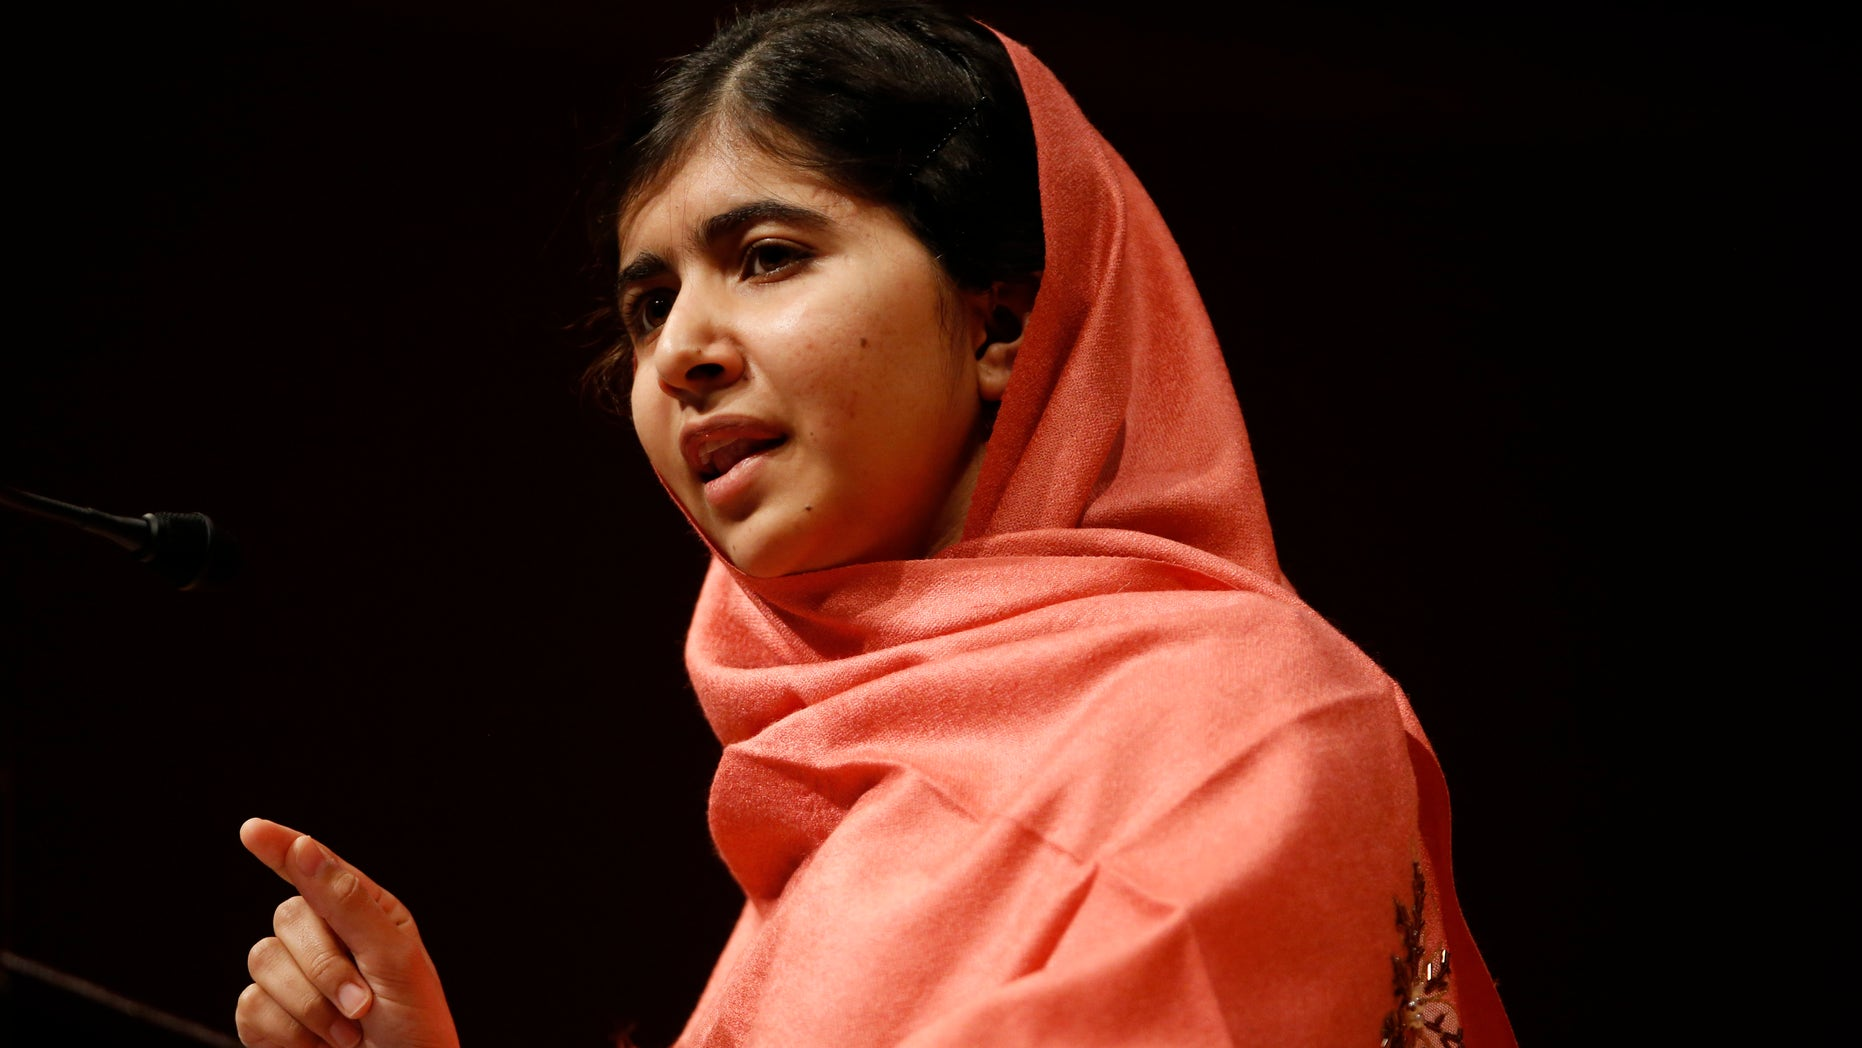 Sept. 27, 2013 - Malala Yousafzai addresses students and faculty after receiving the 2013 Peter J. Gomes Humanitarian Award at Harvard University  in Cambridge, Mass. The Pakistani teenager, an advocate for education for girls, survived a Taliban assassination attempt last year on her way home from school.